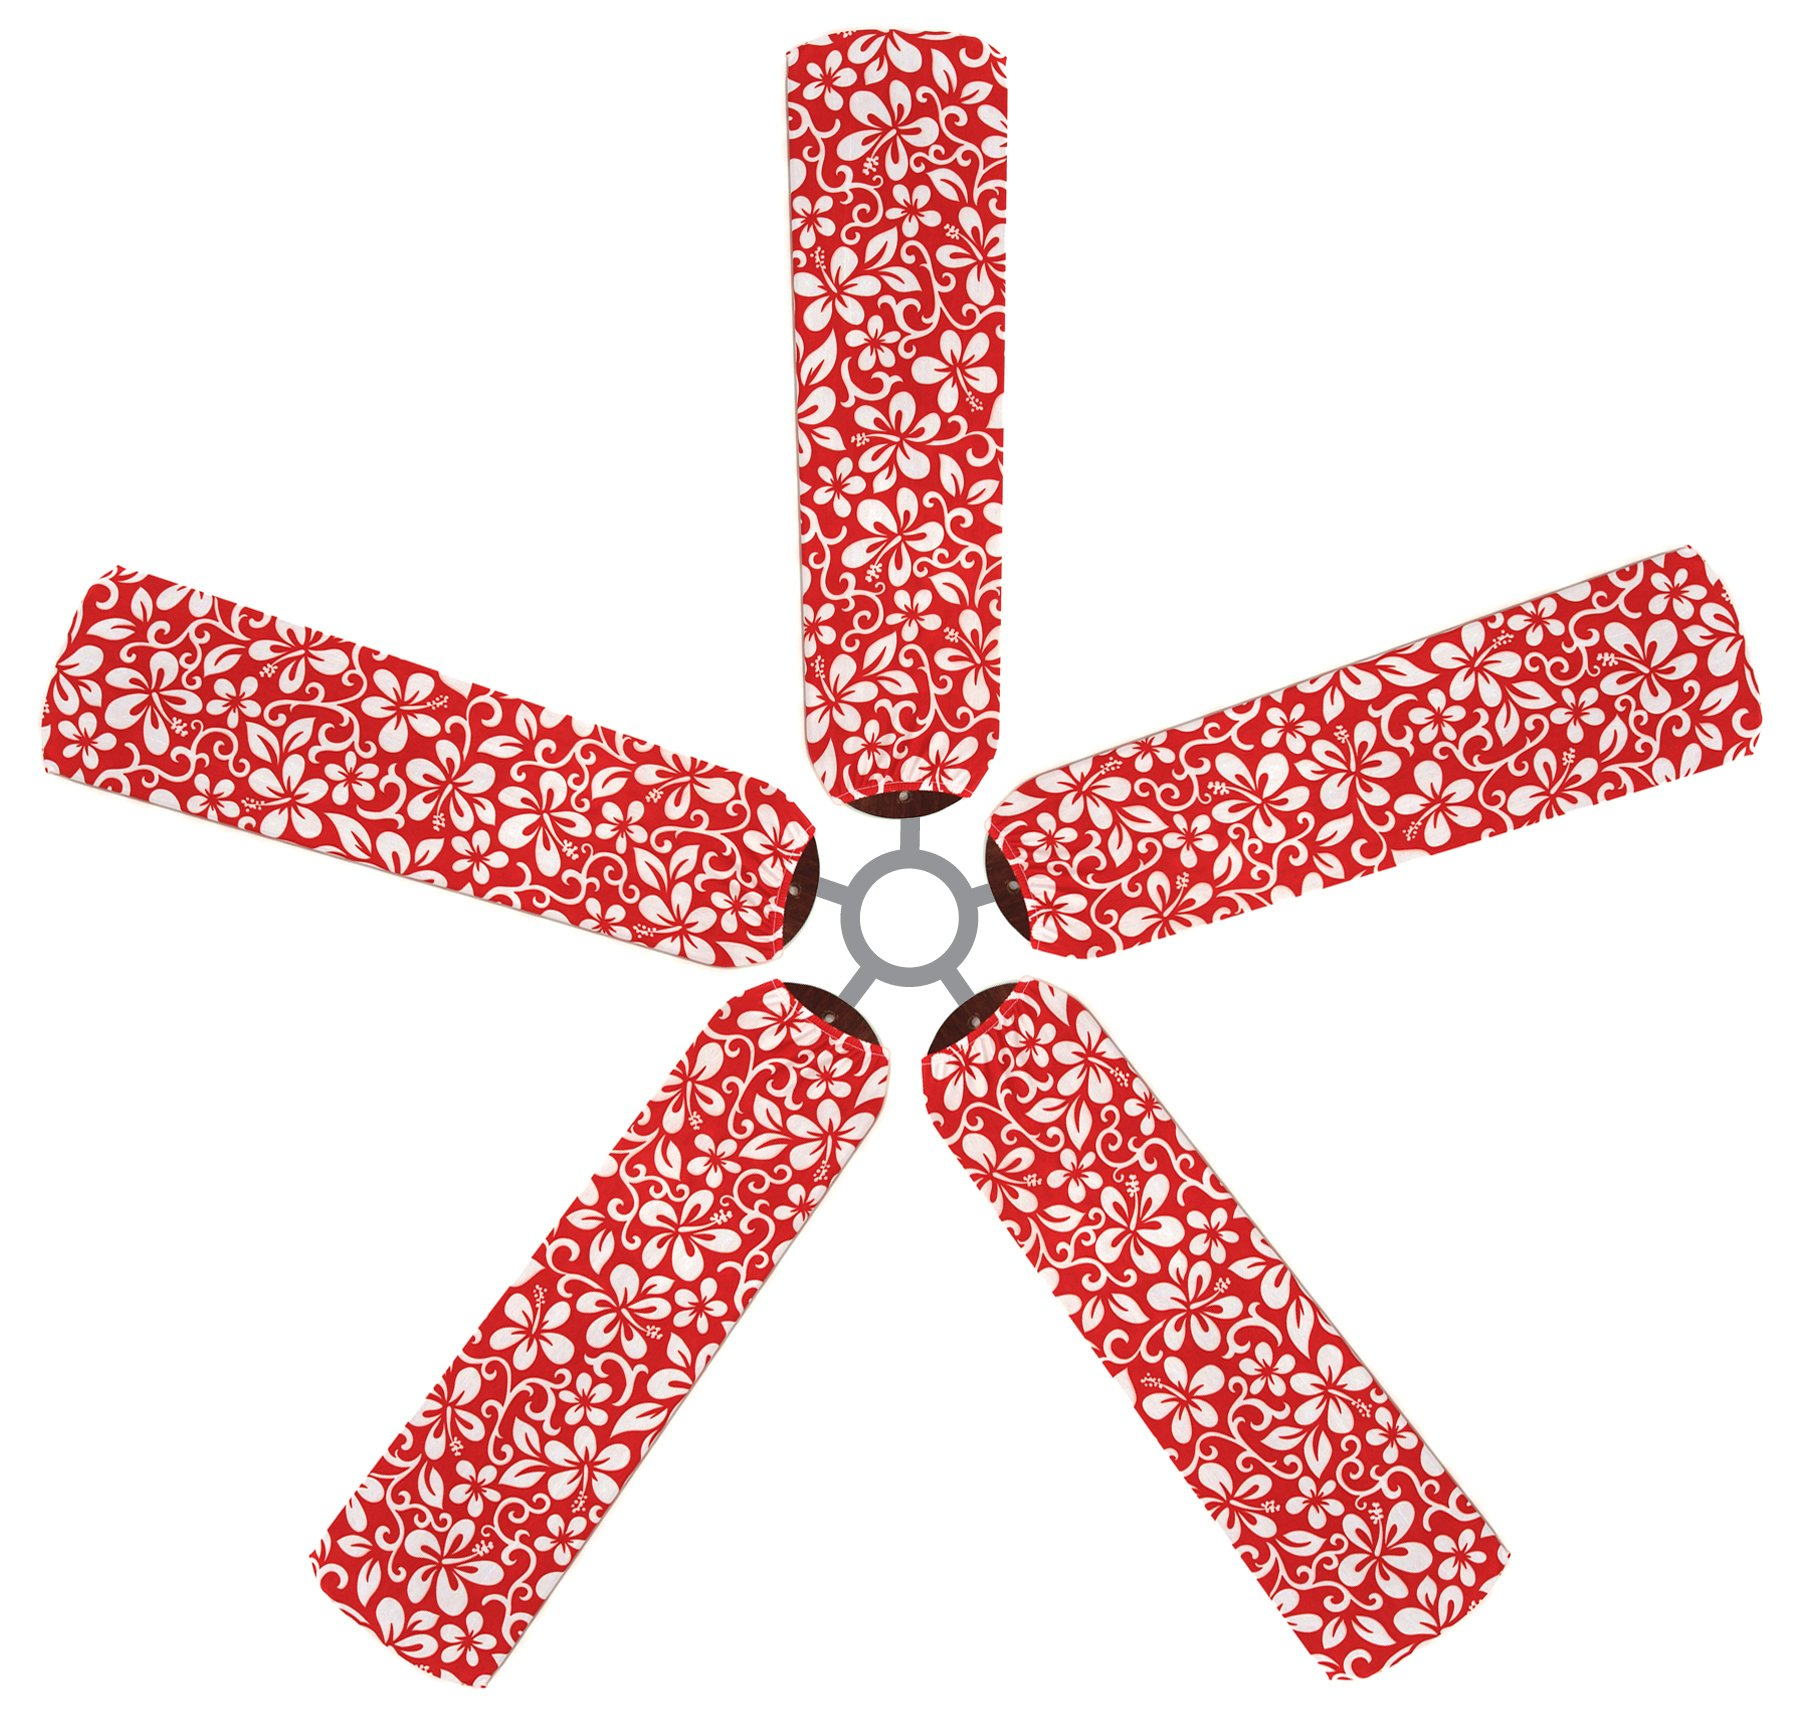 Fan Blade Designs Red Hawaiian Ceiling Fan Blade Covers